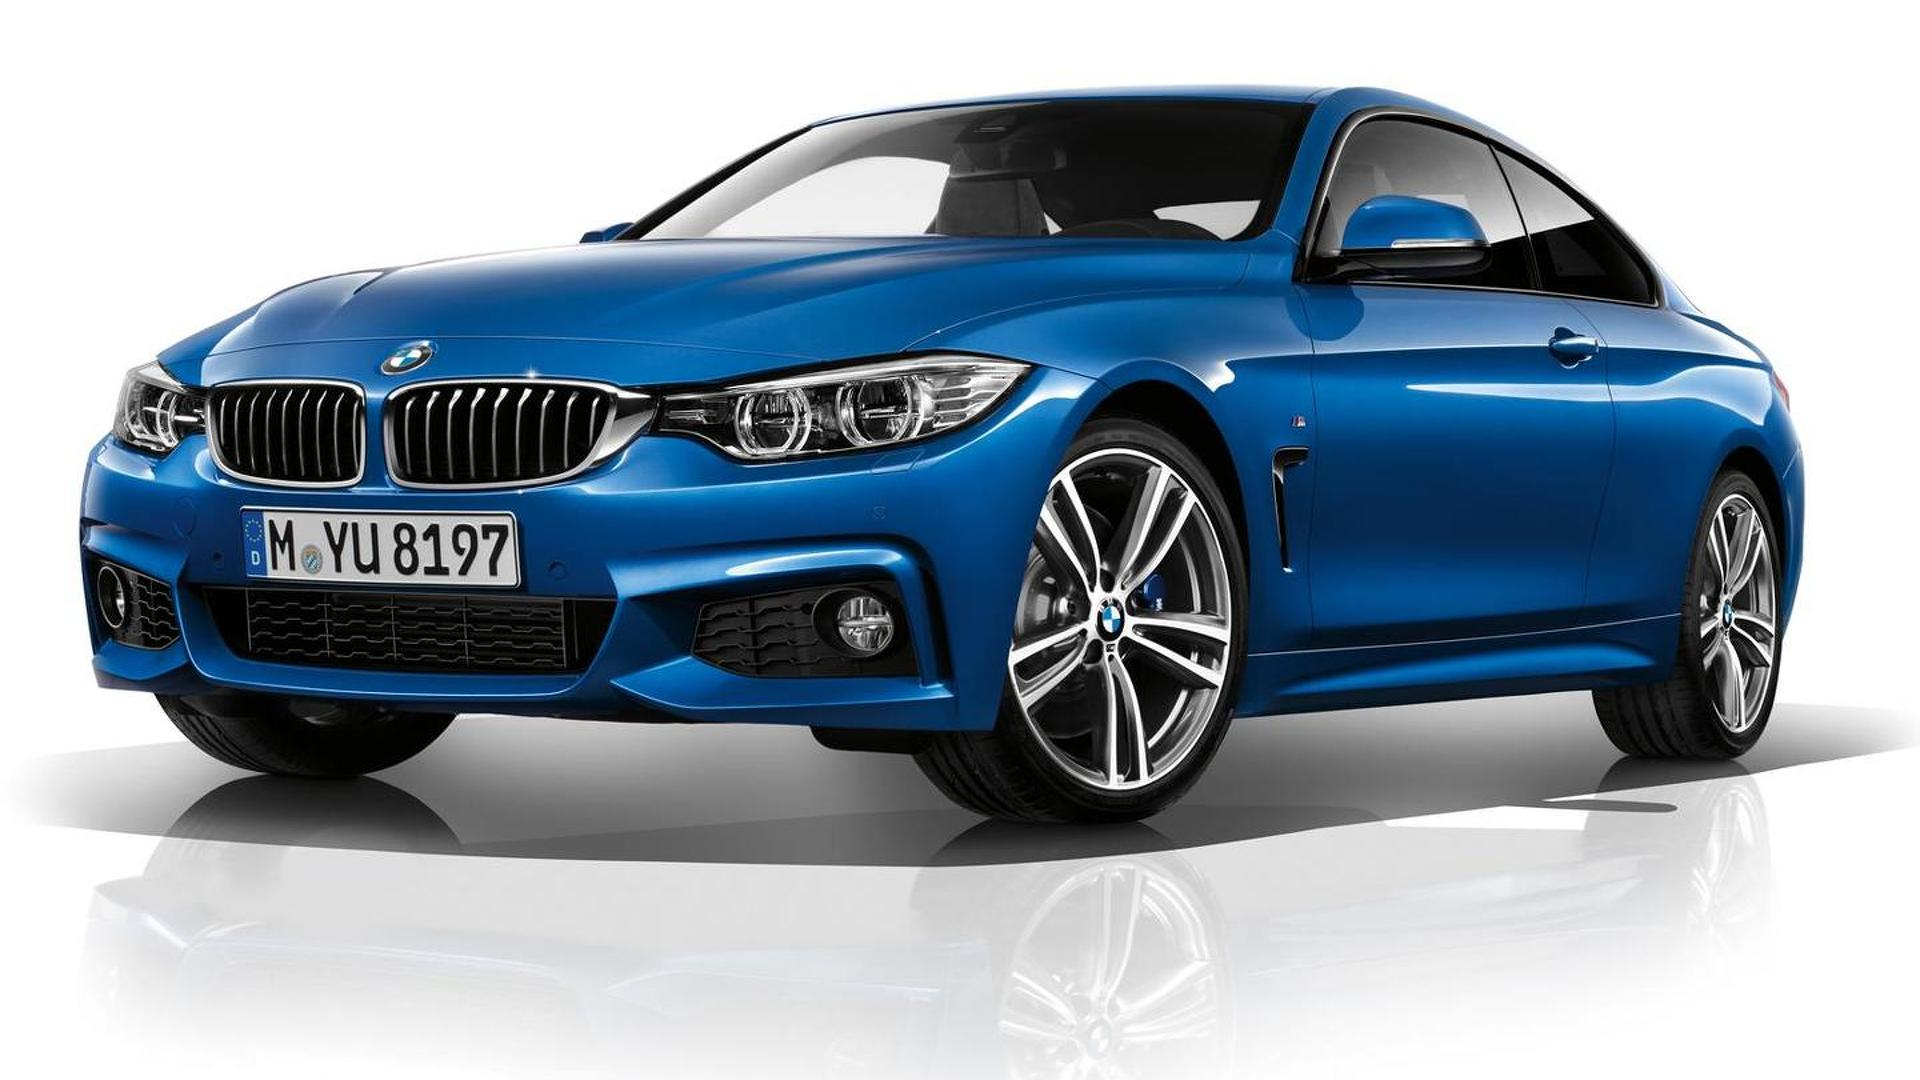 2014 BMW 4-Series Coupe leaked